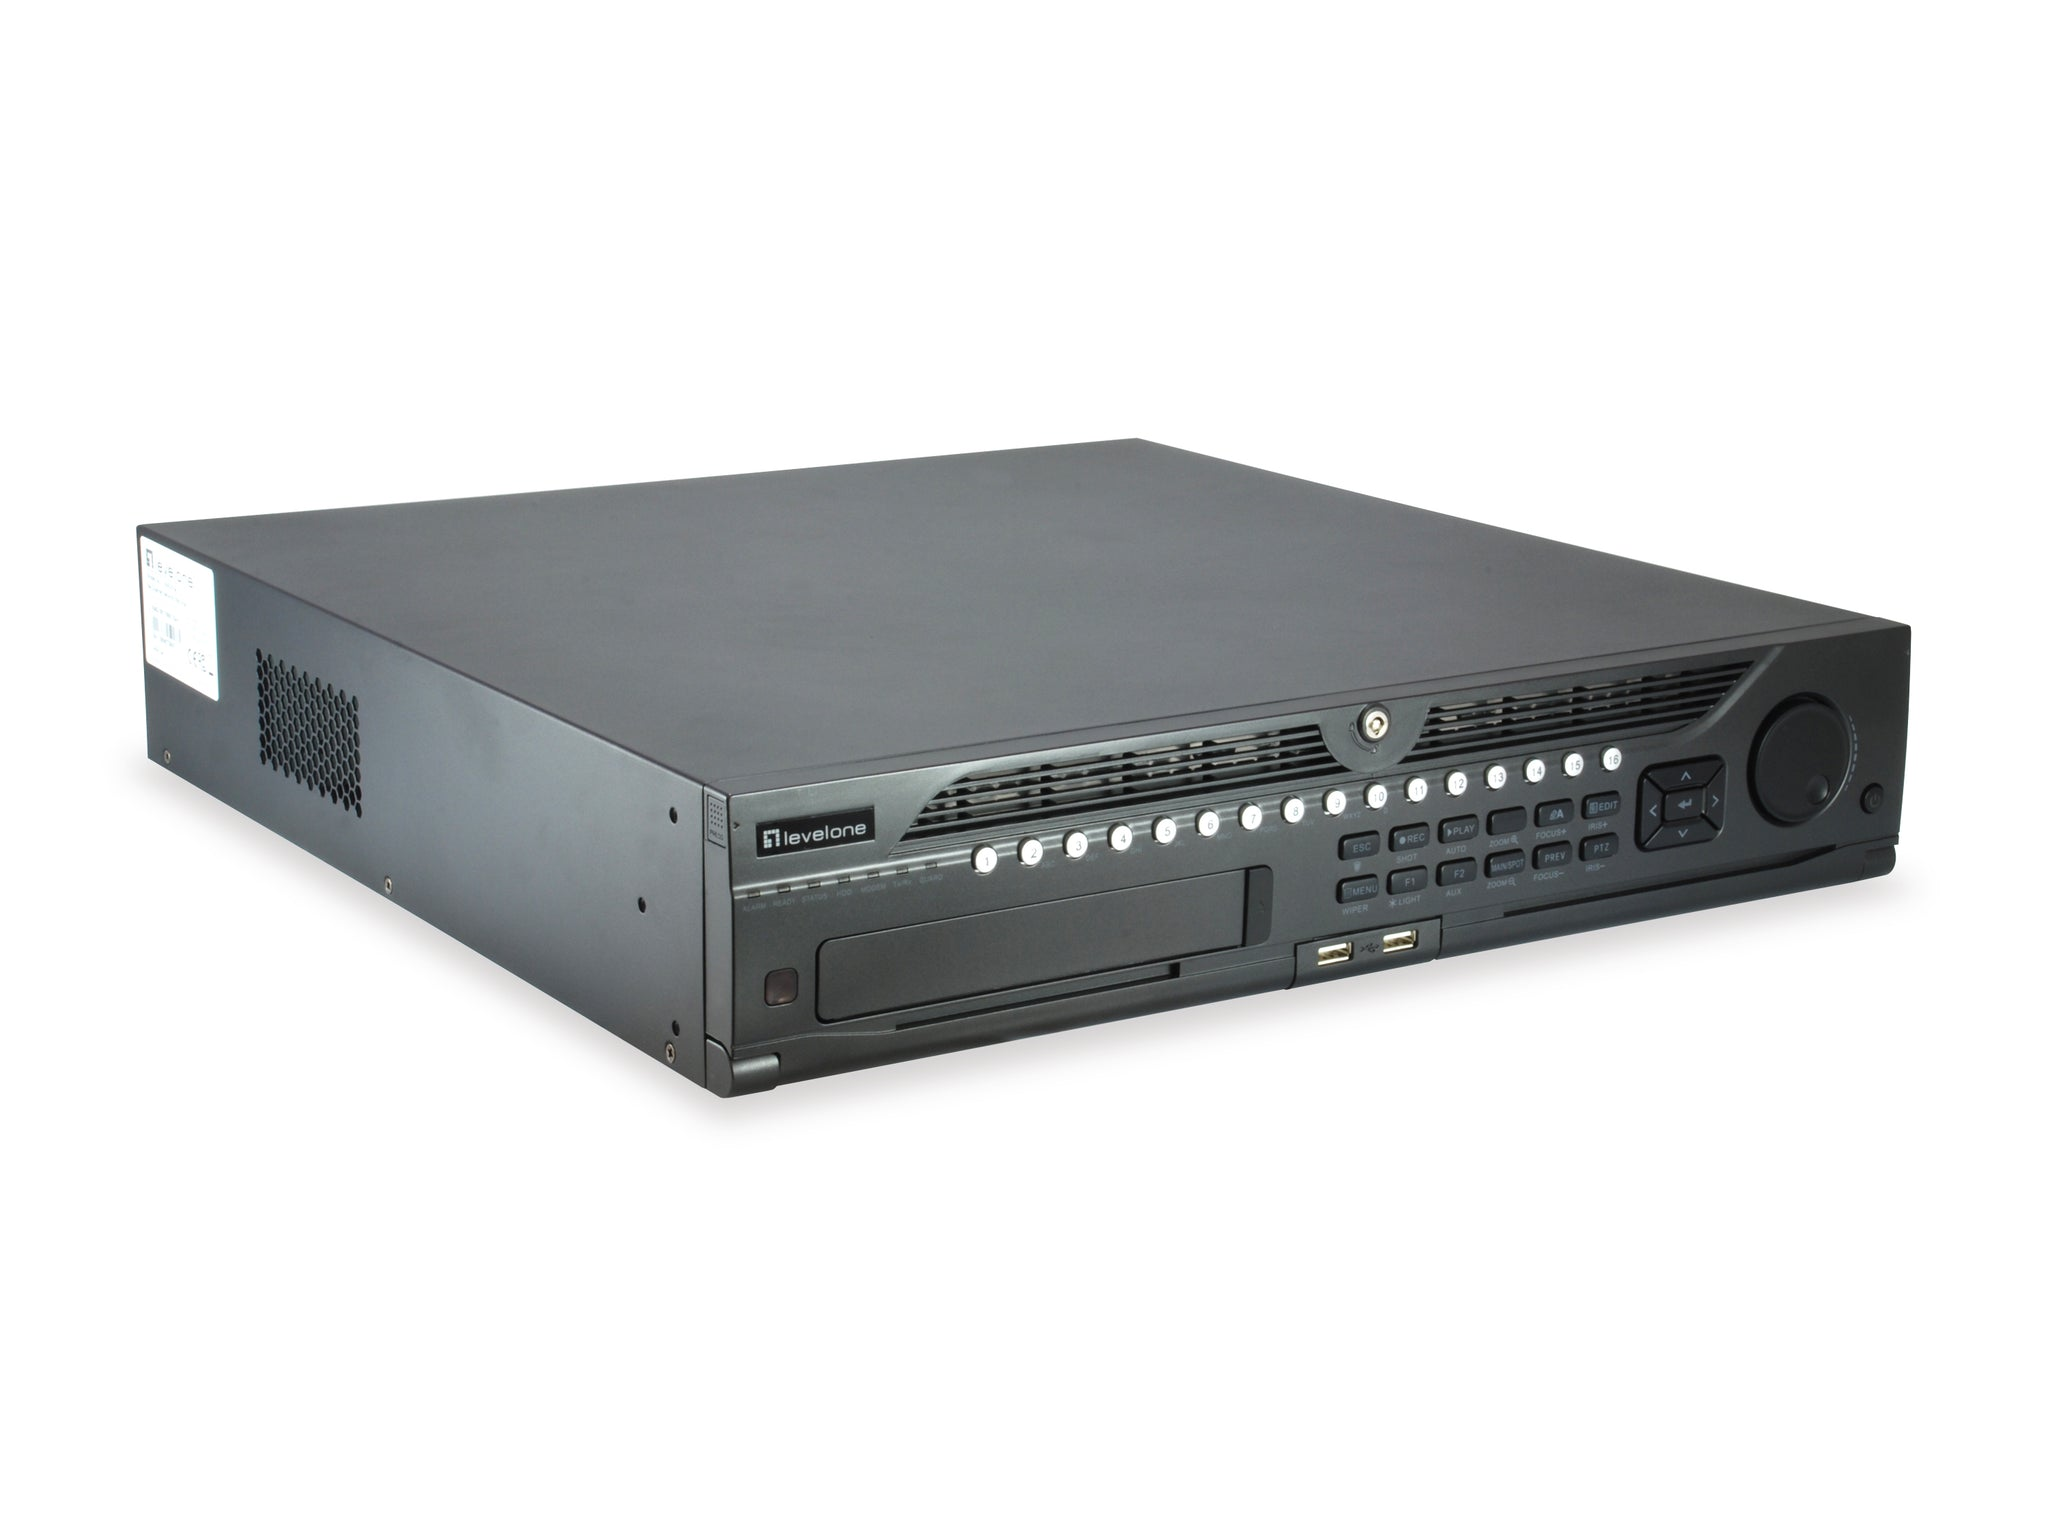 NVR-0764 64-Channel Network Video Recorder, H.265/264, RAID